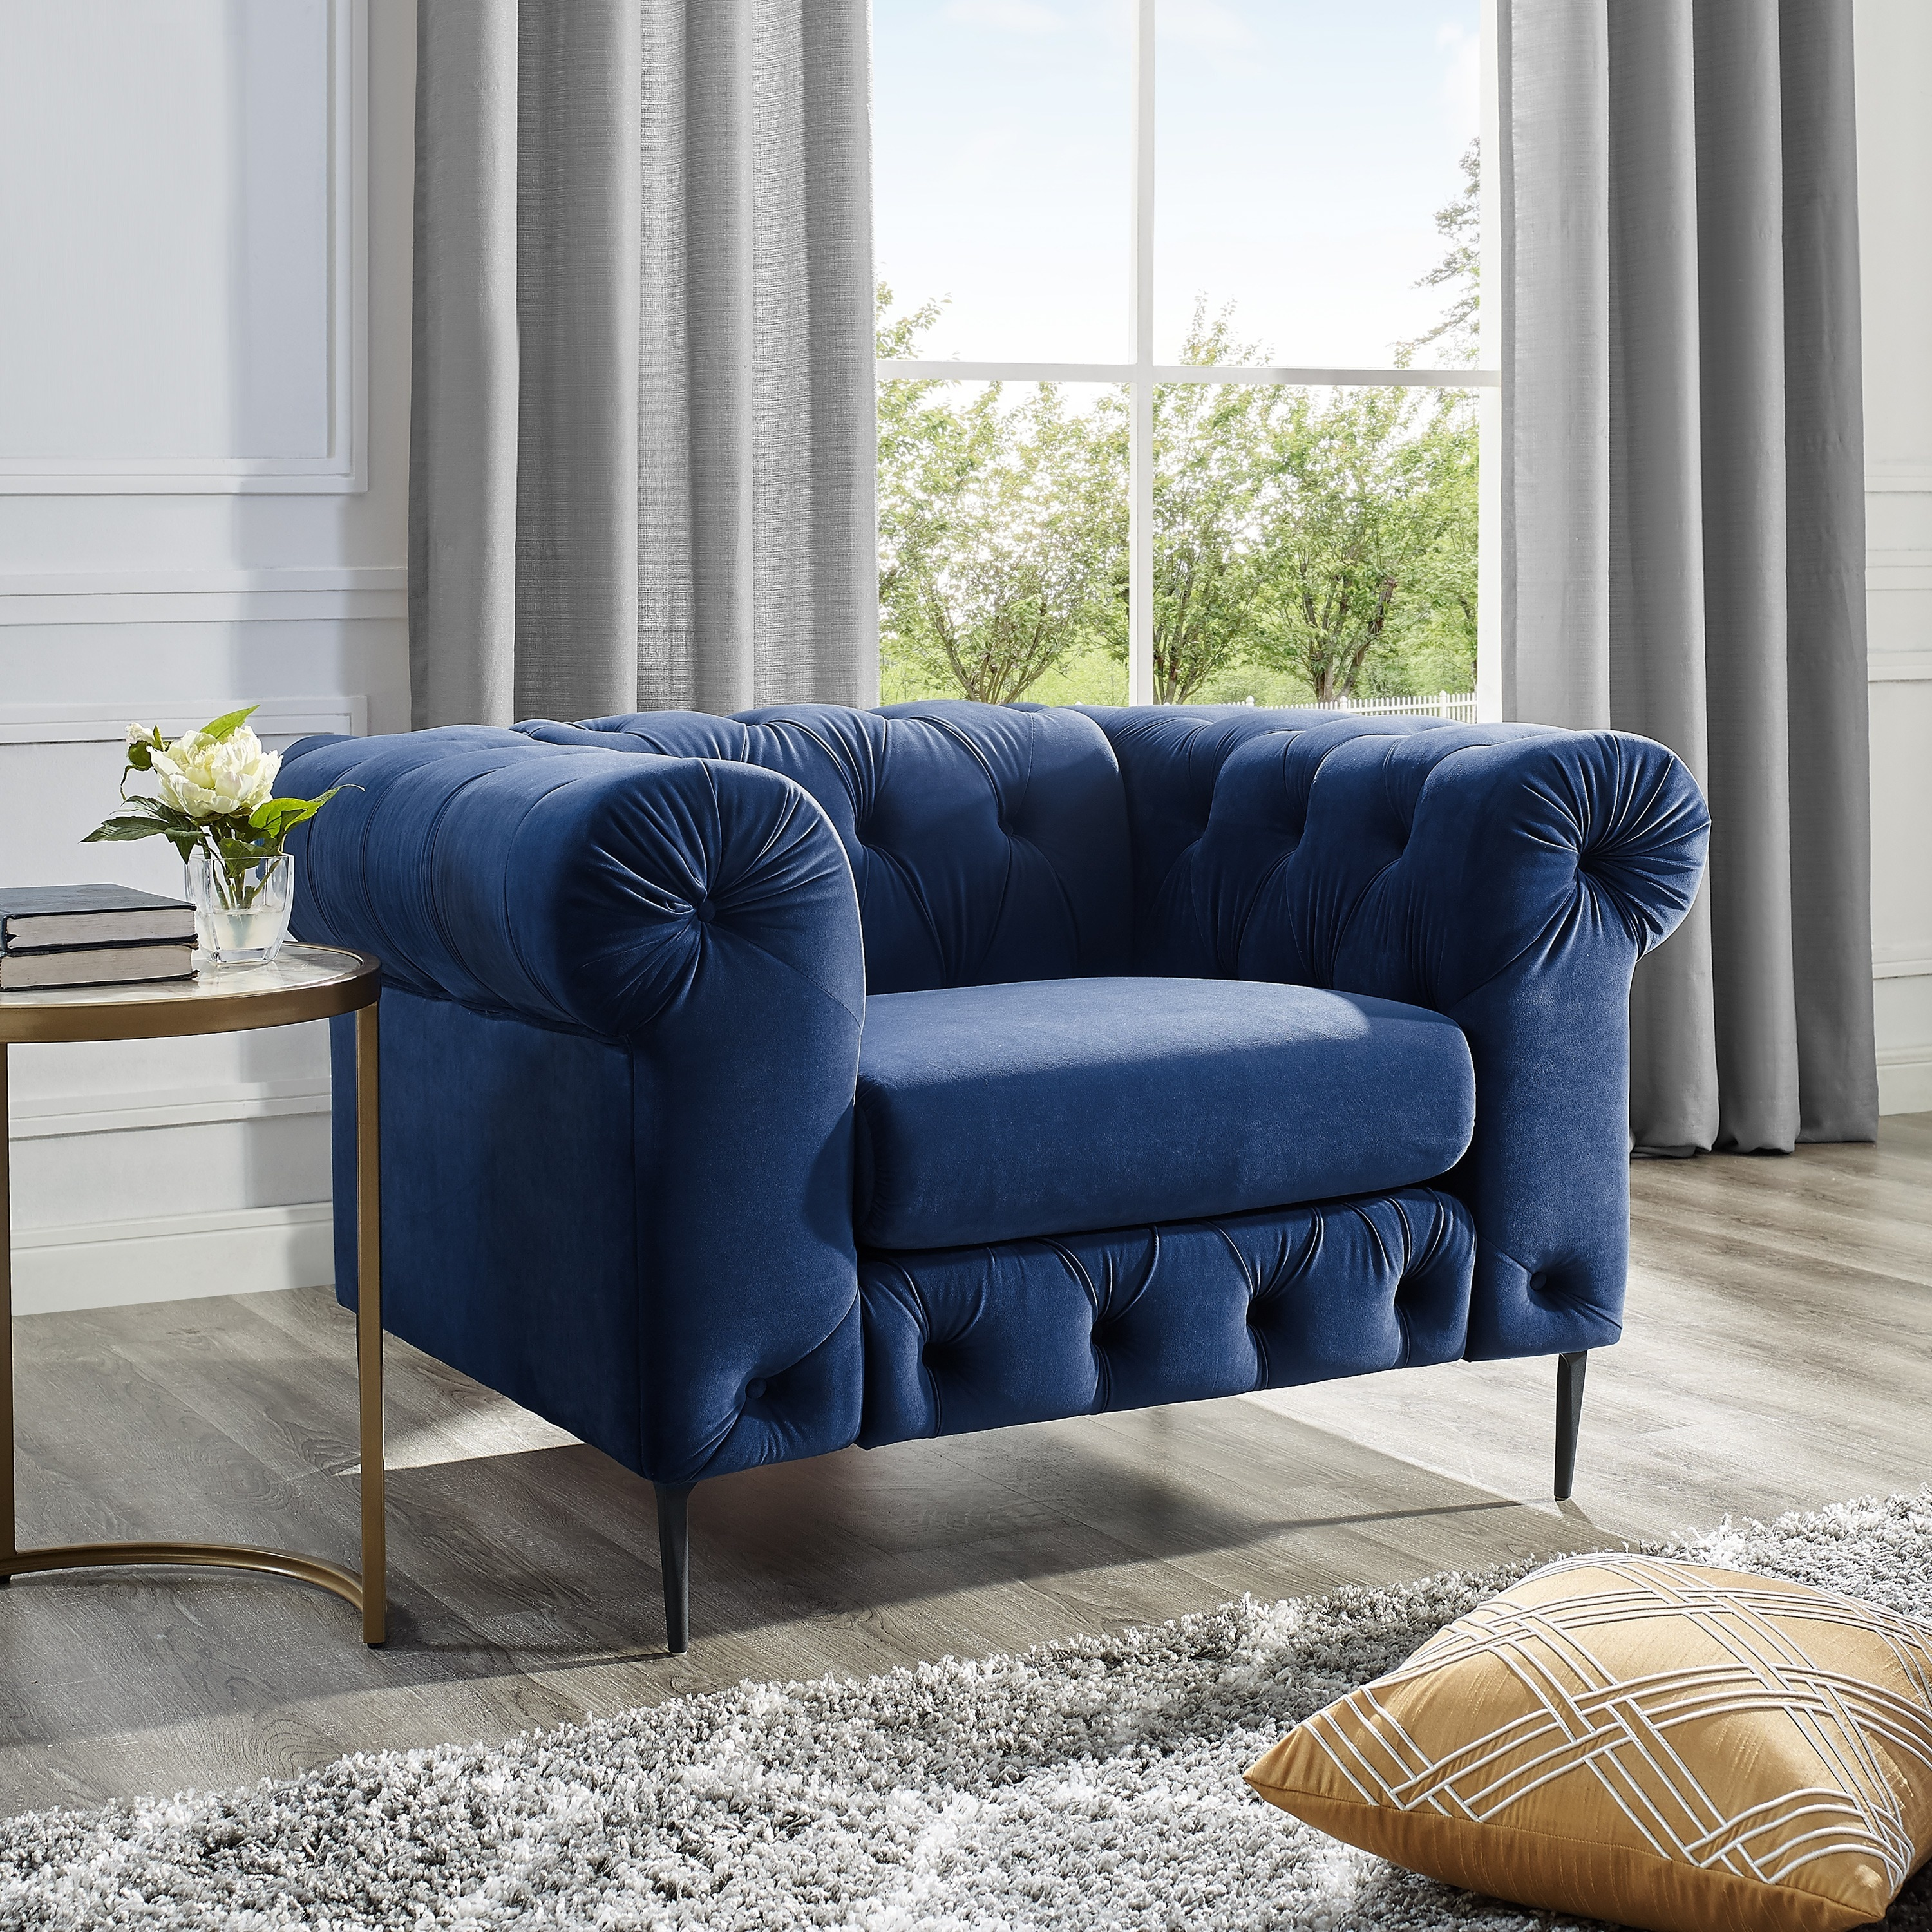 Corvus Prato Tufted Rolled Arm Sofa Chair   Free Shipping Today   Overstock    25697400